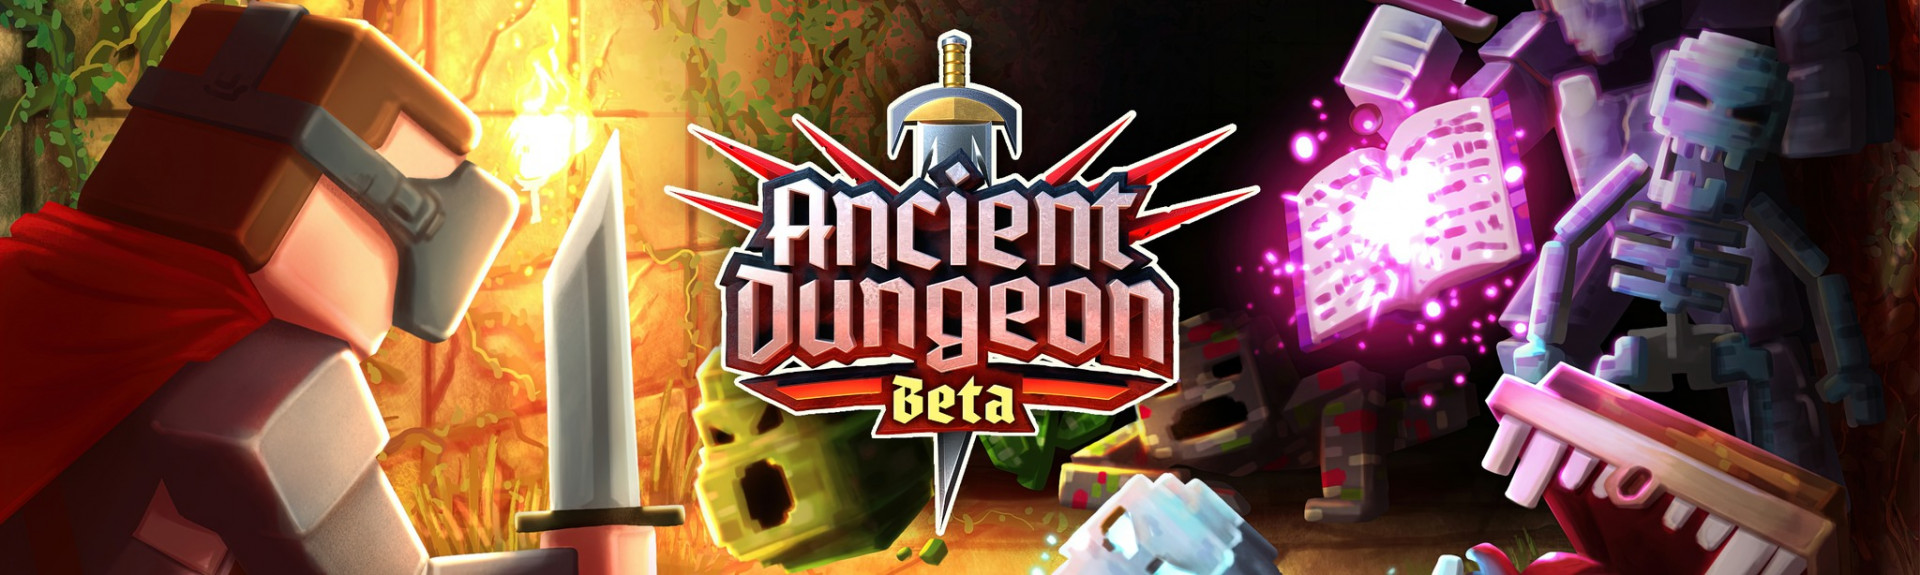 Ancient Dungeon Beta